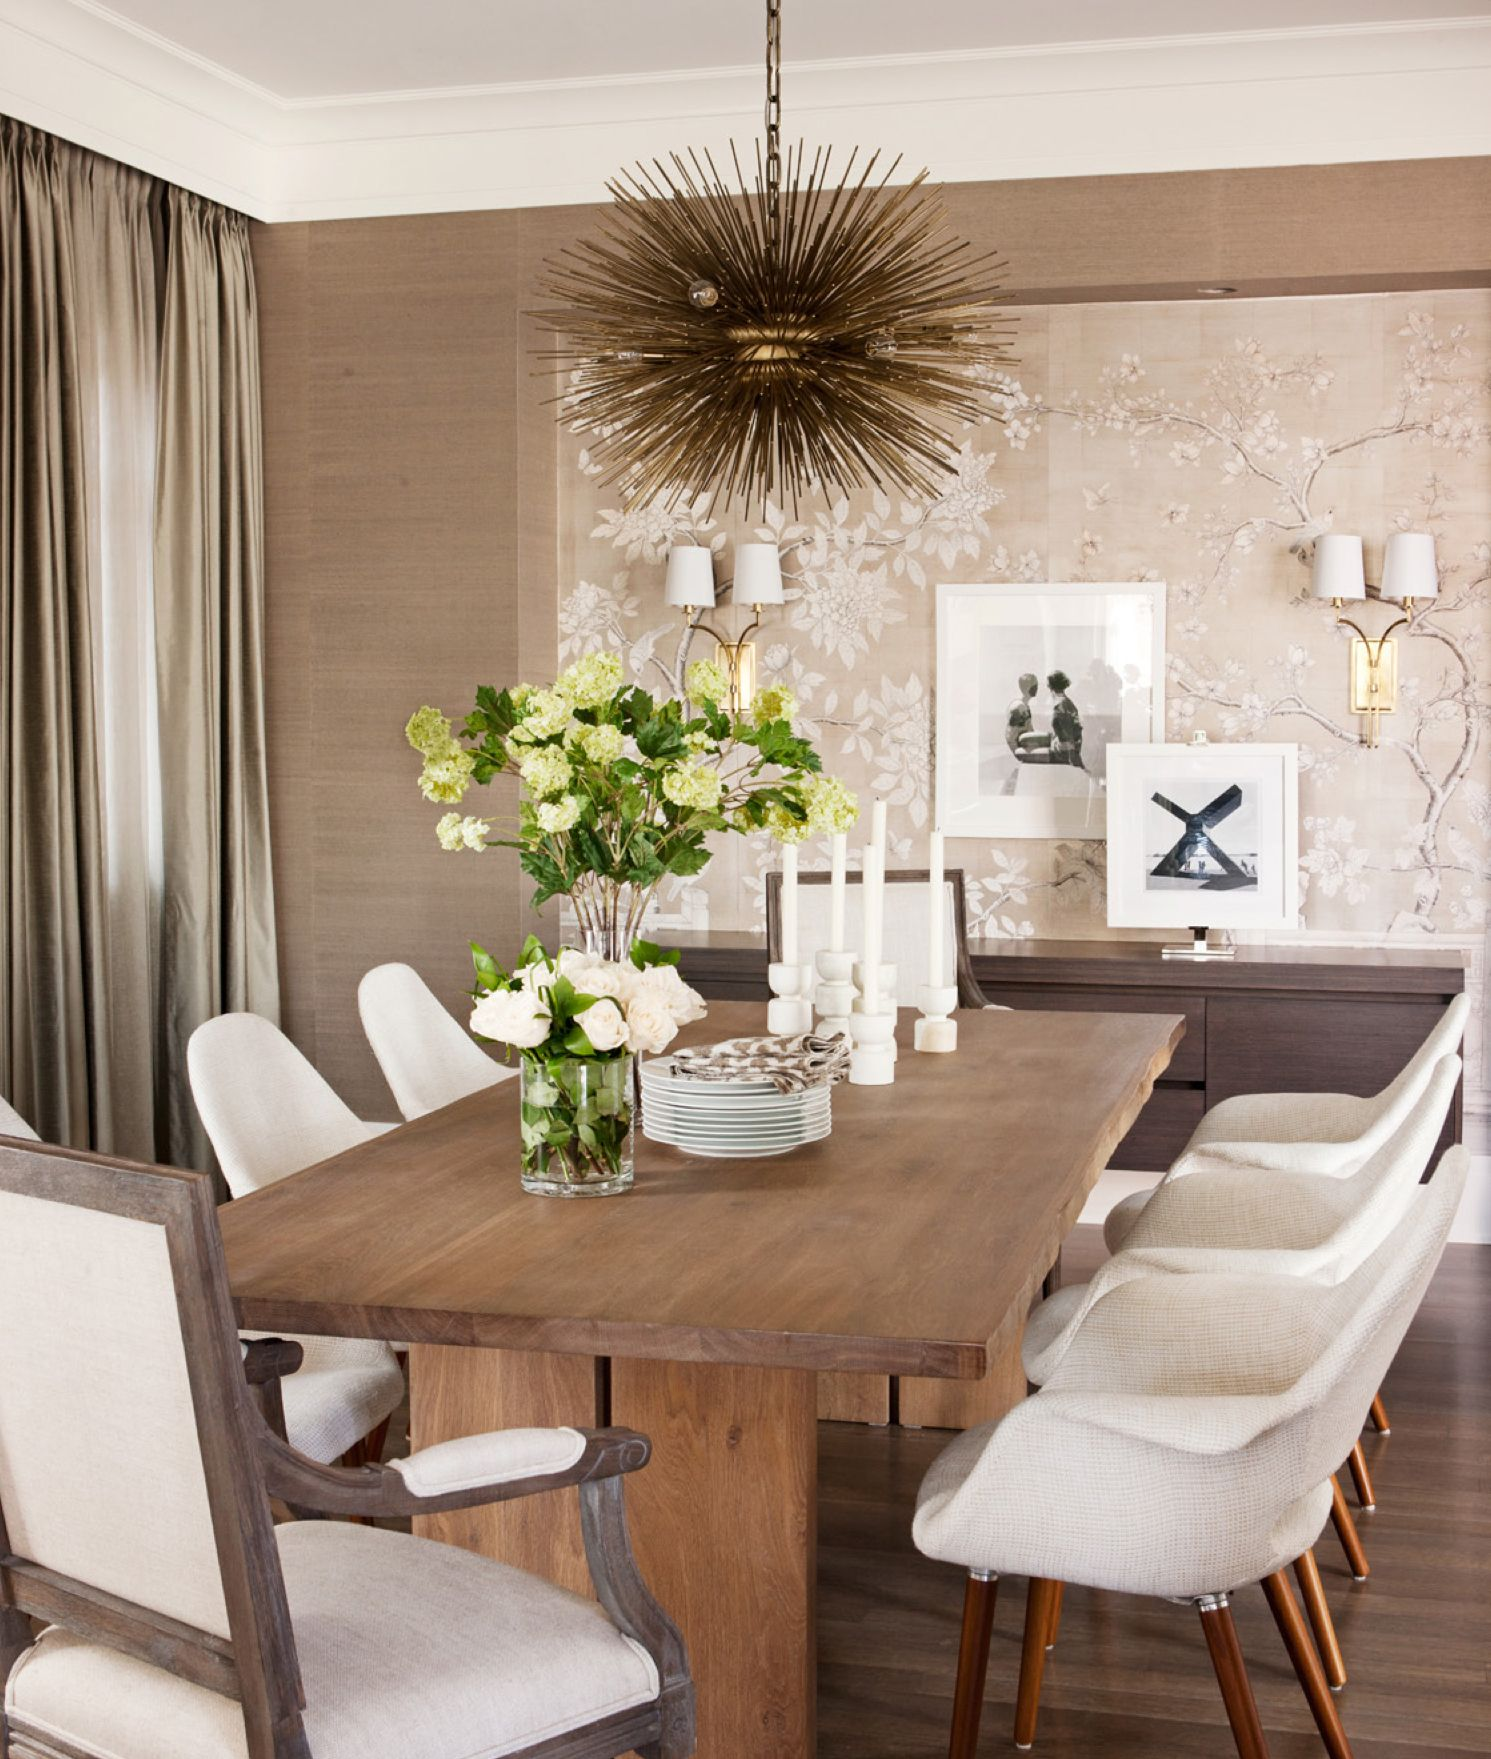 Dining Room Inspiration Let S Fall In Love With The Most Dazzling Decor A Mid Century Modern Design